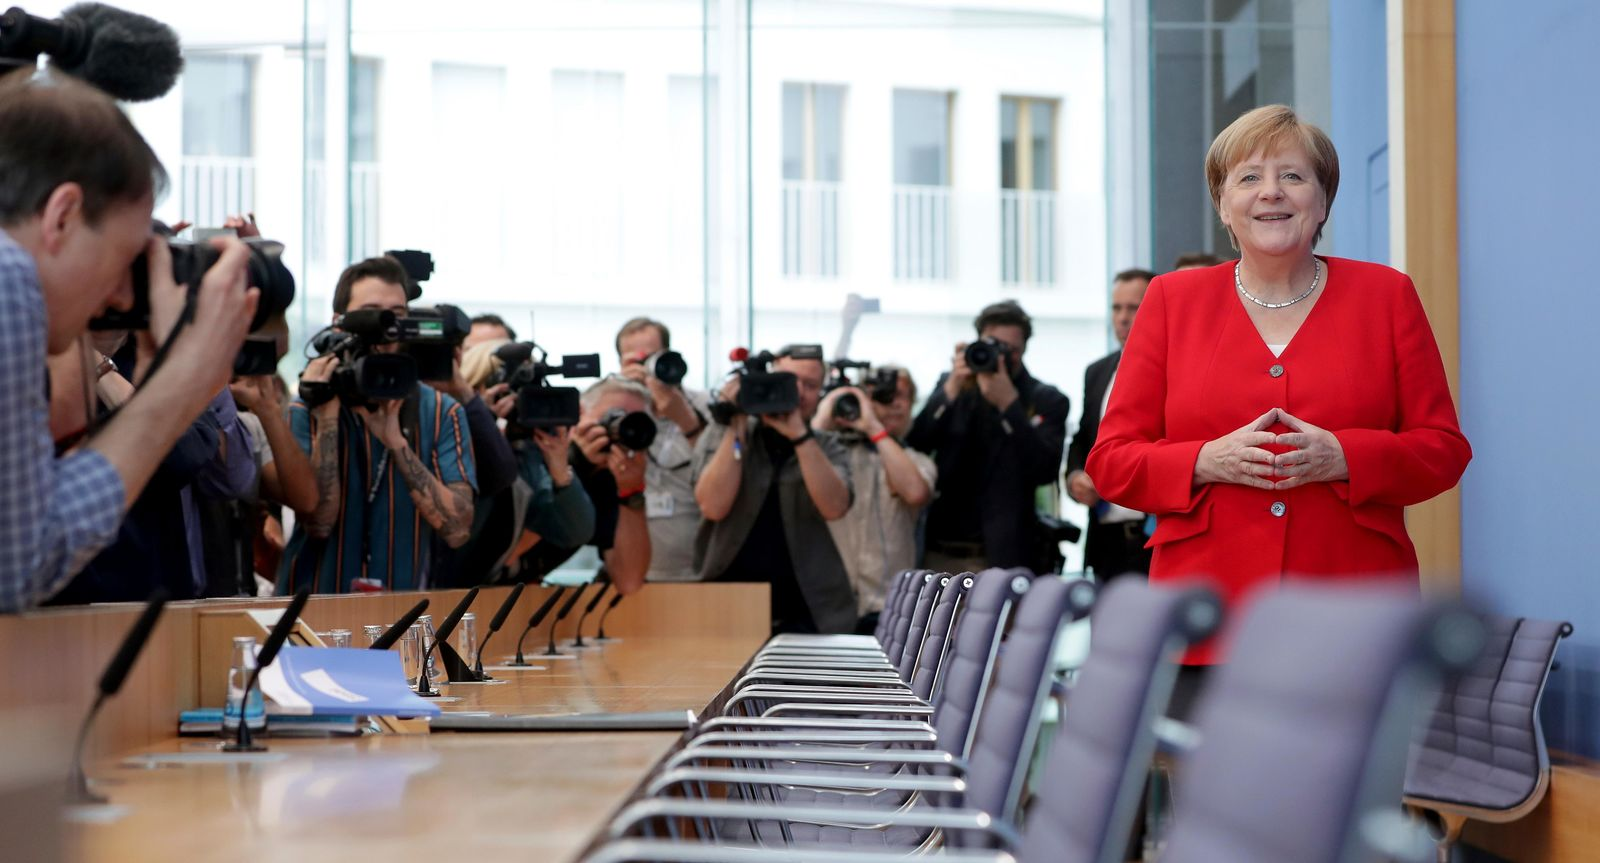 German Chancellor Angela Merkel, right, smiles as she arrives for her annual sommer press conference in Berlin, Germany, Friday, July 19, 2019. (AP Photo/Michael Sohn)